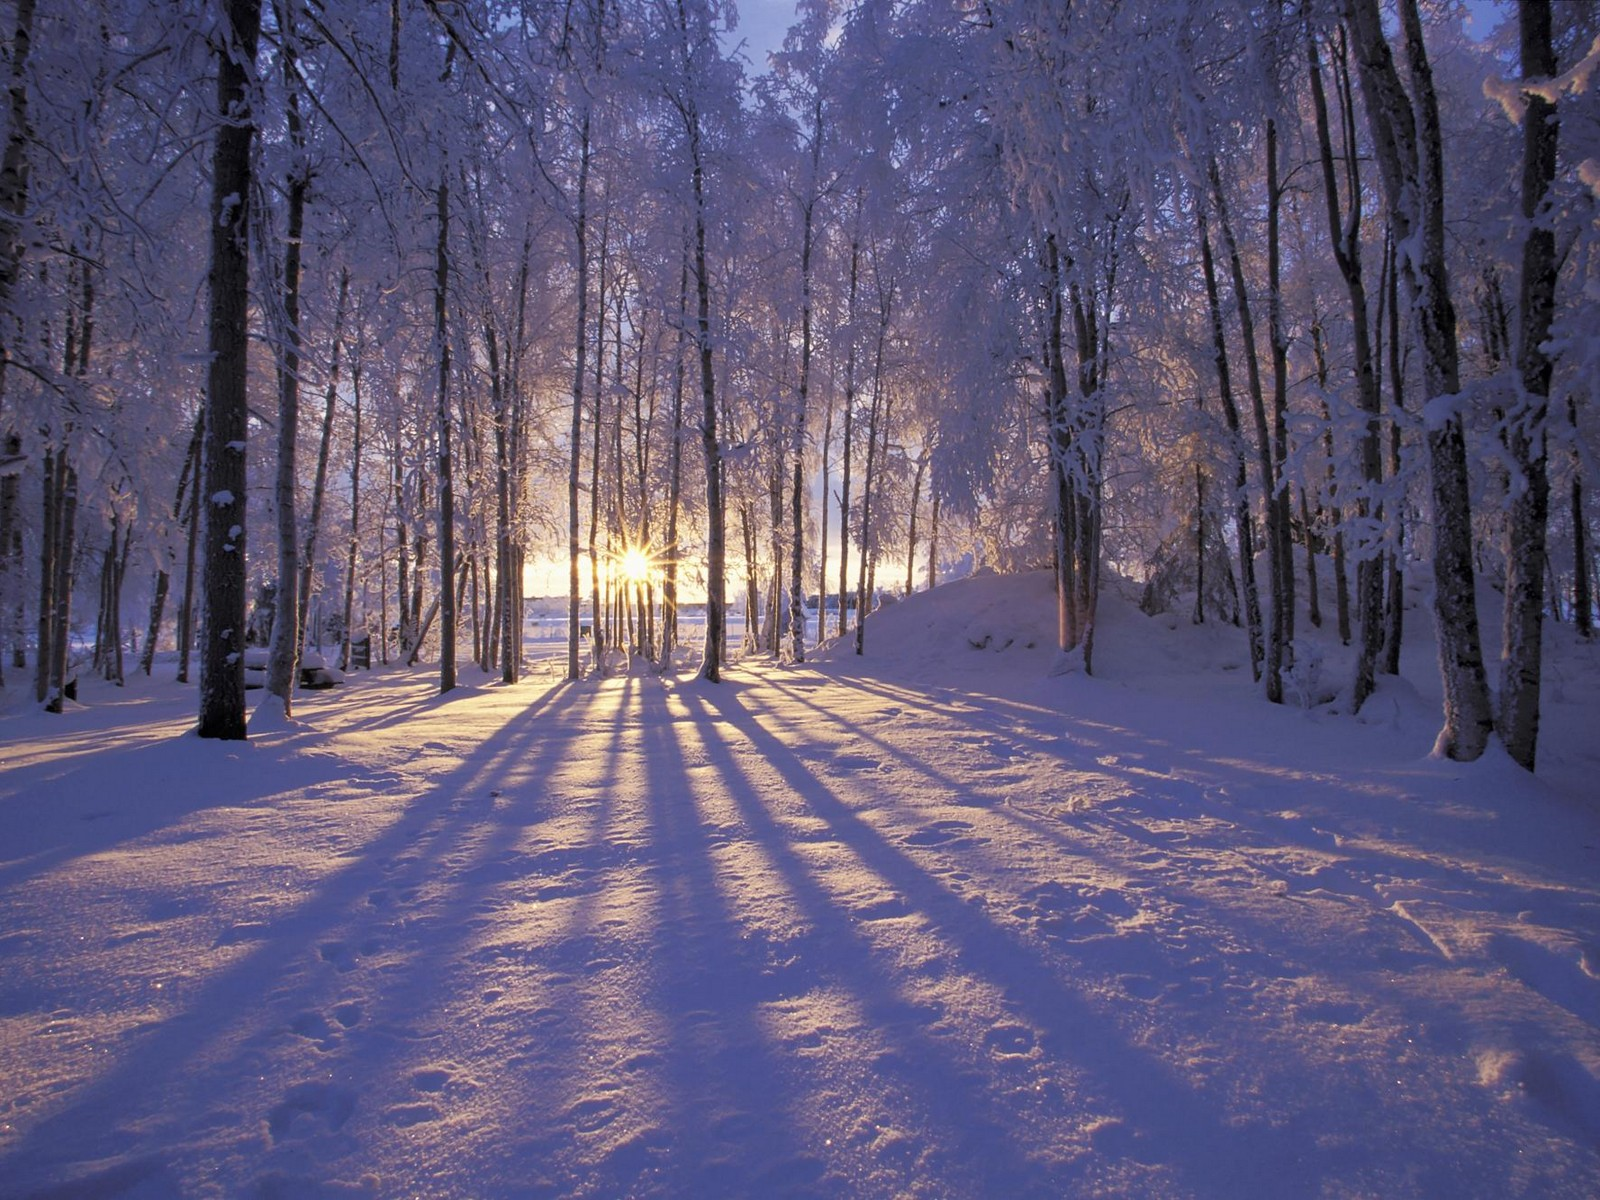 Winter Scenery Facebook Cover Photos